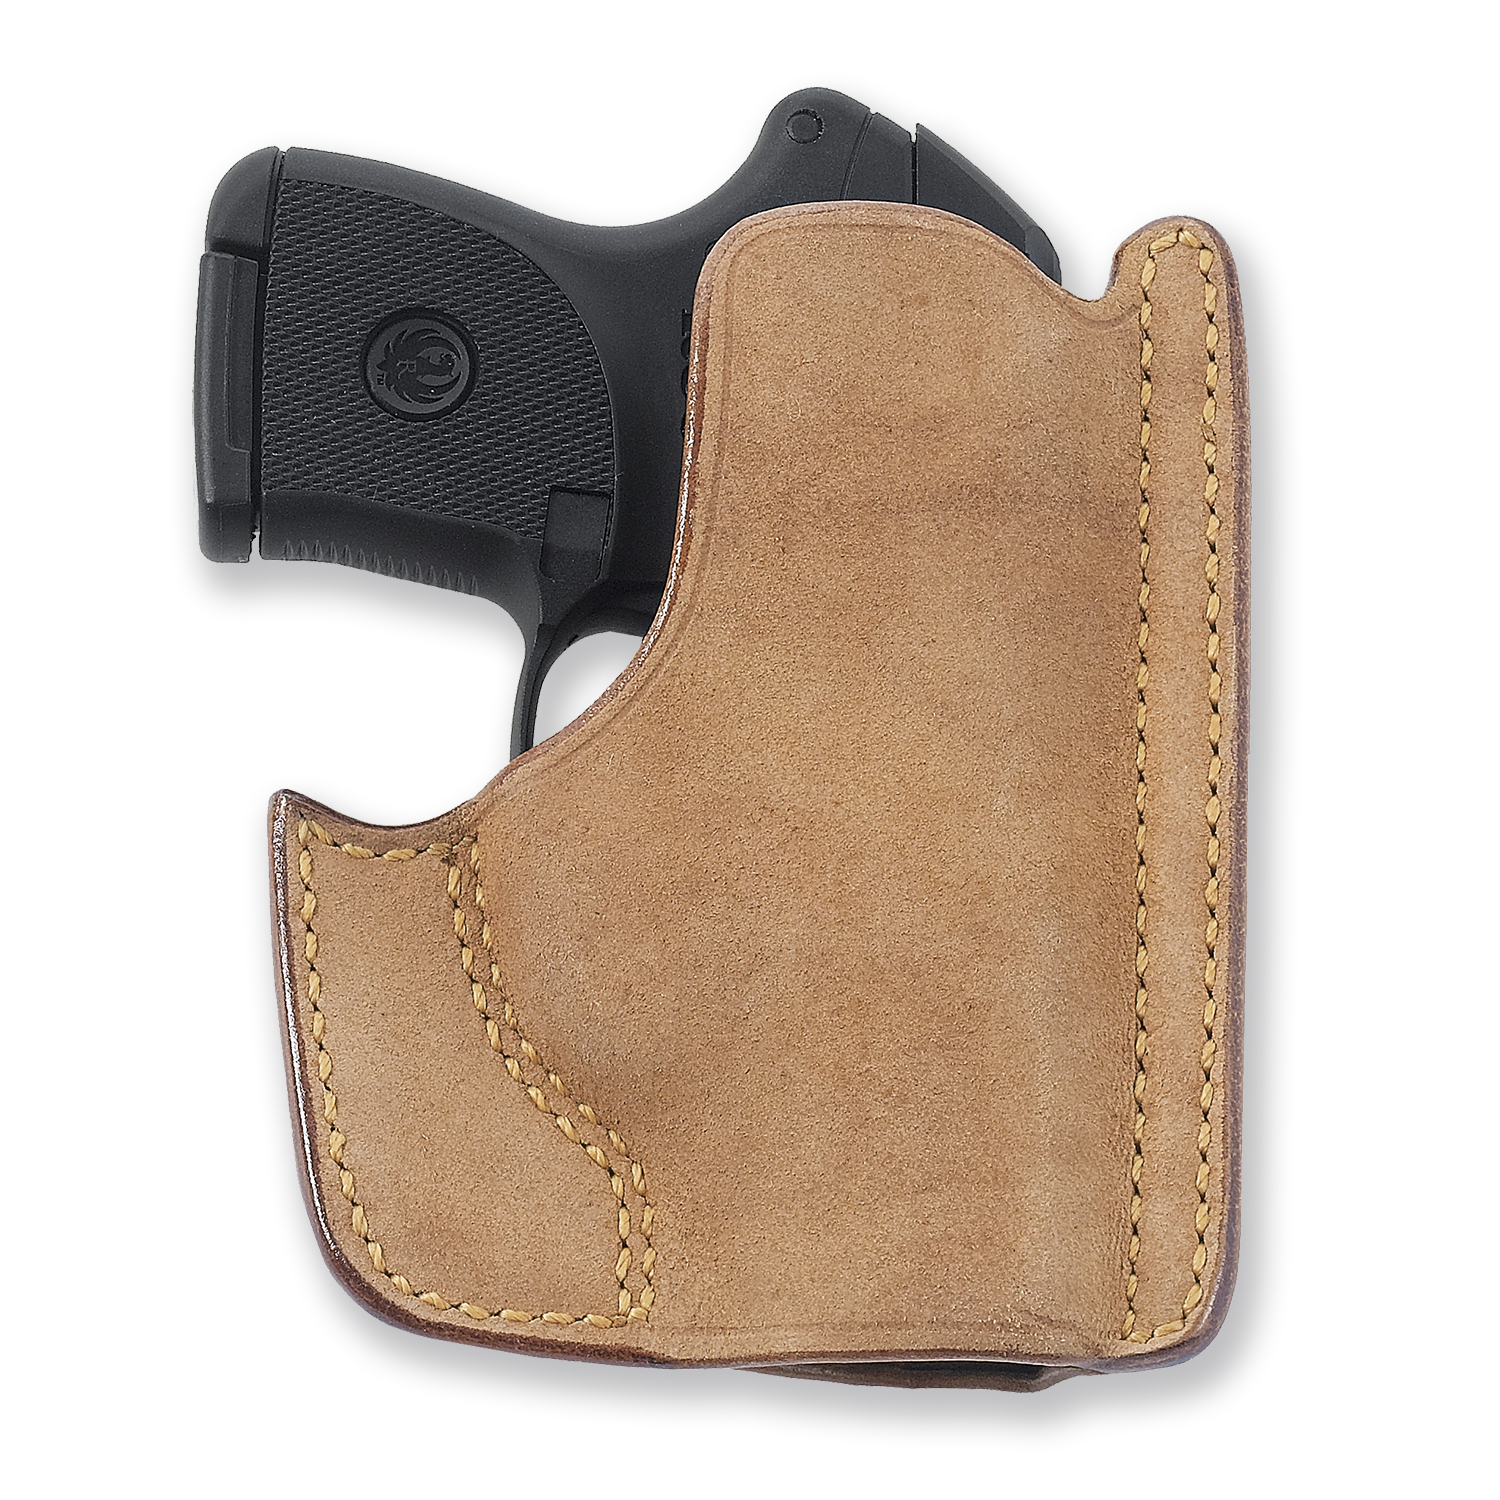 Galco Front Pocket Concealment Holsters, Leather